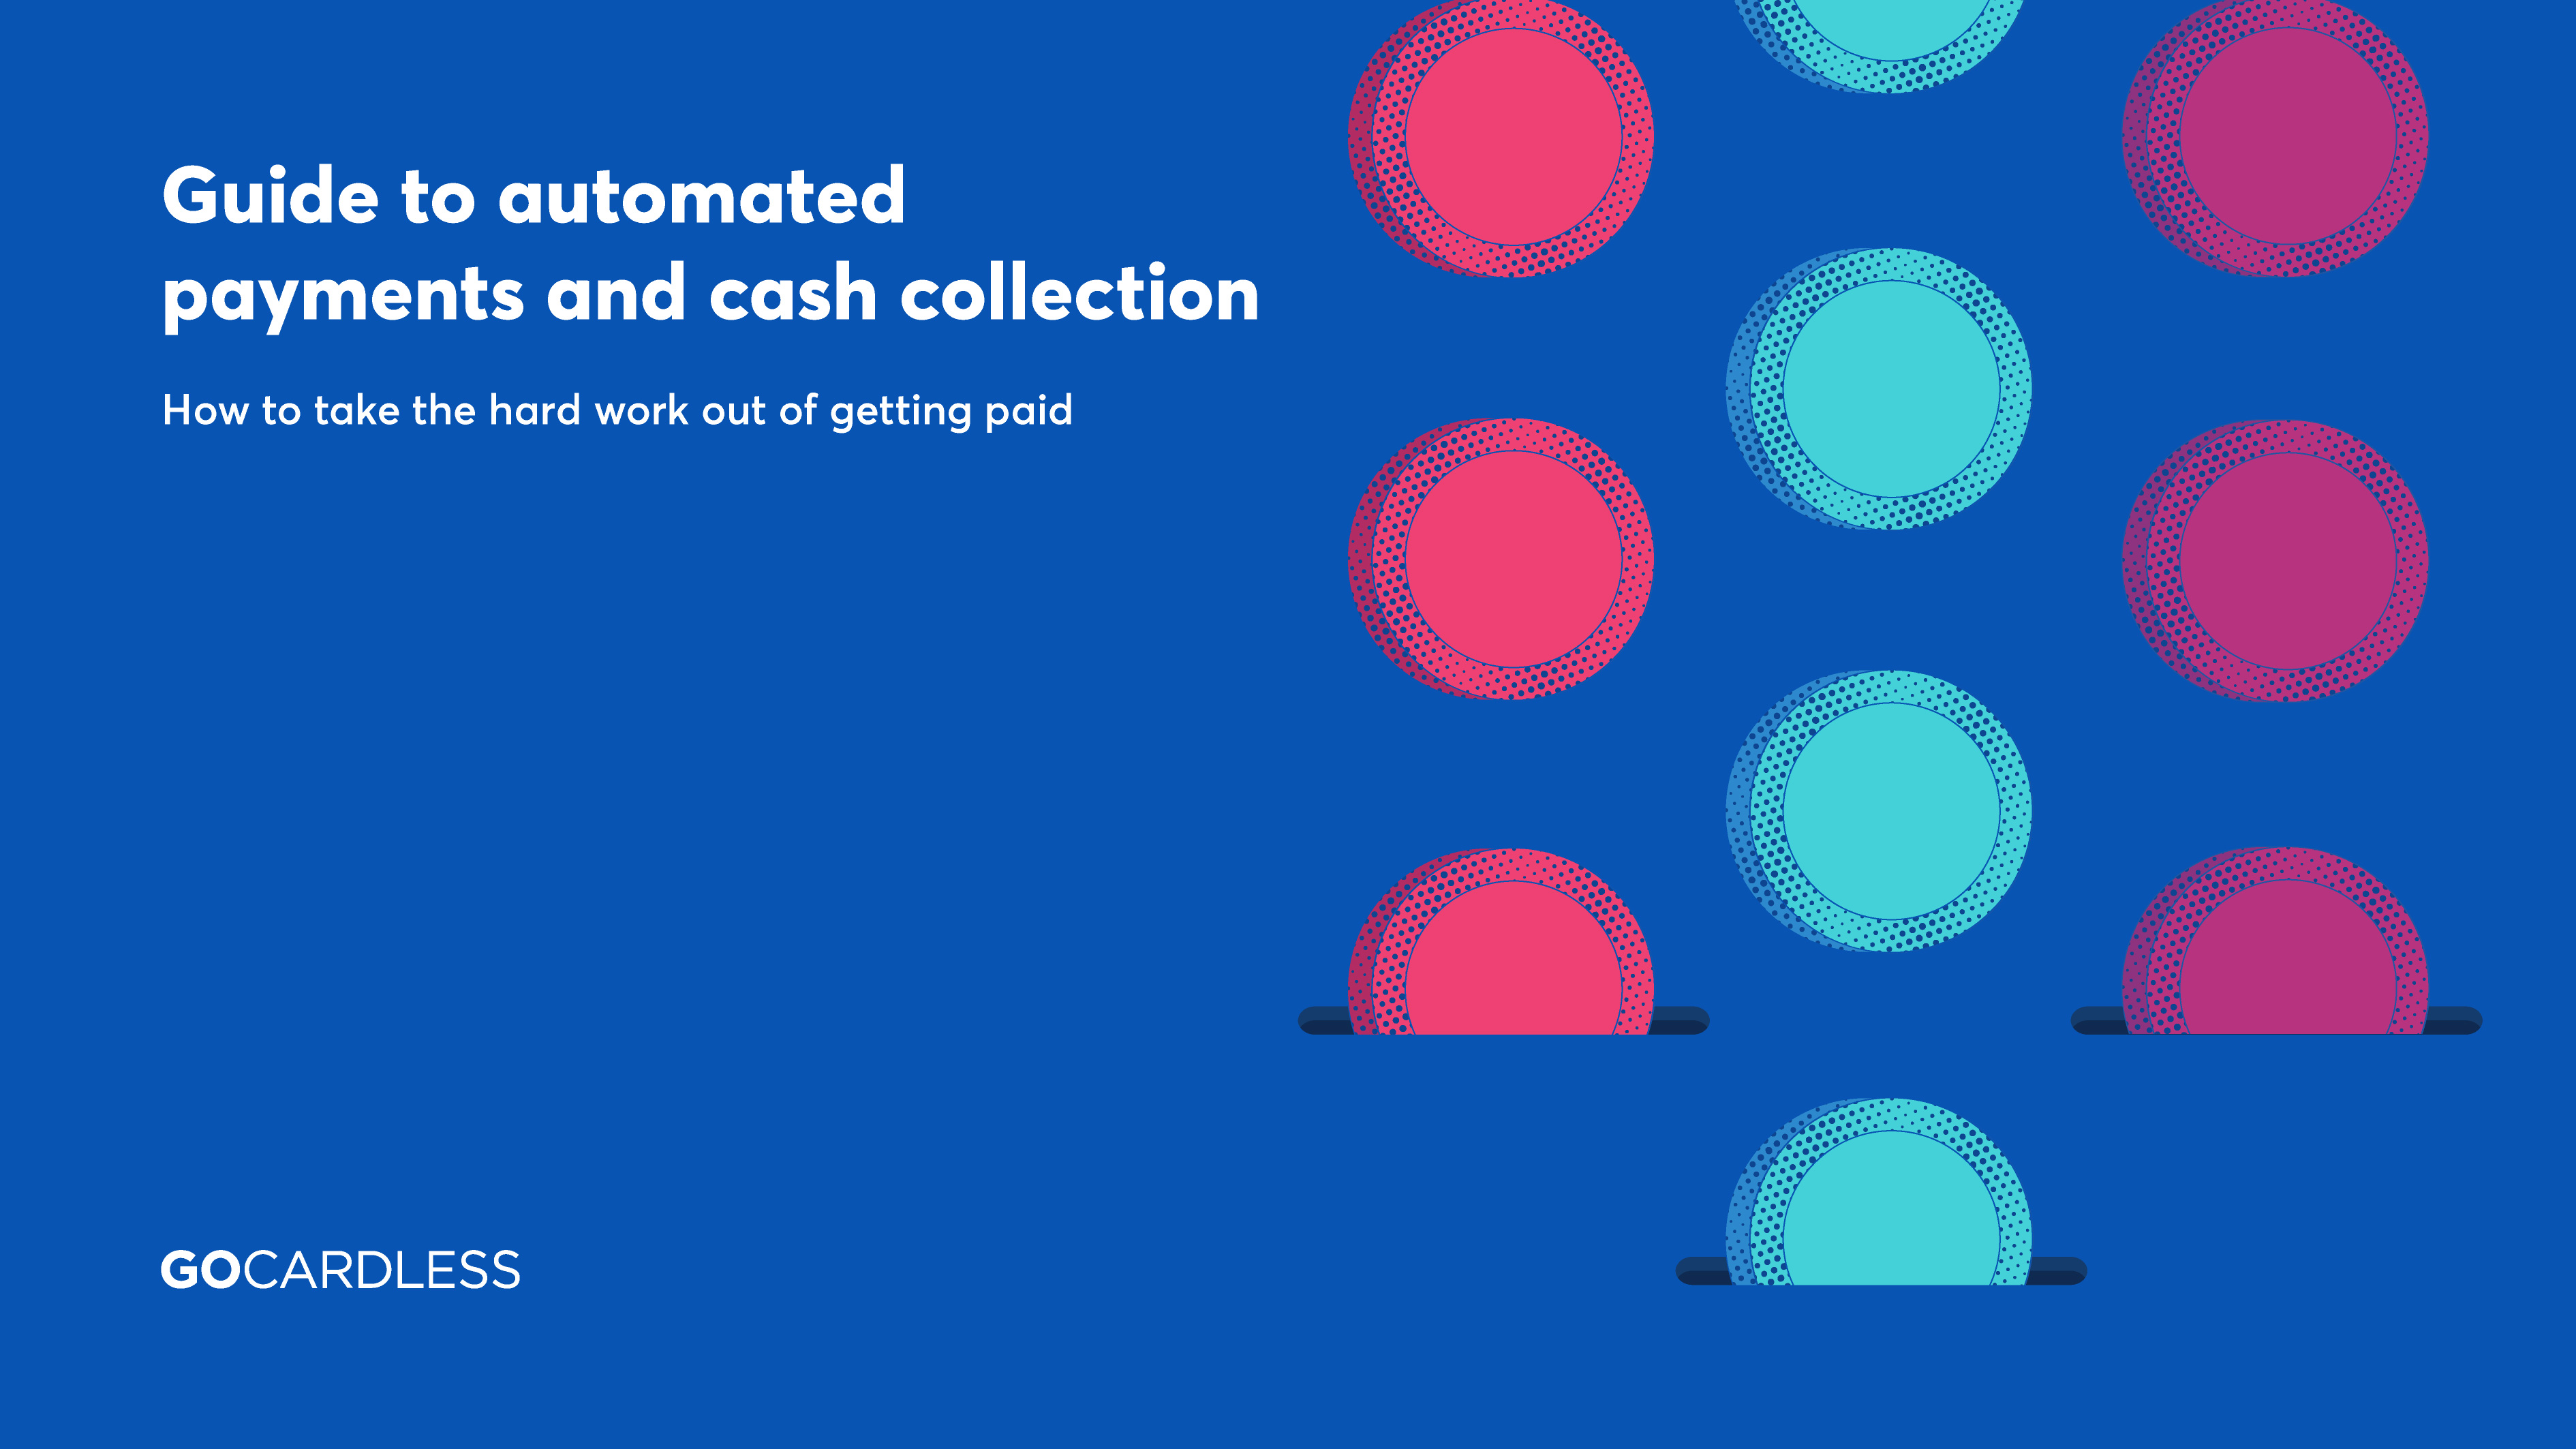 Guide to automated payments and cash collection